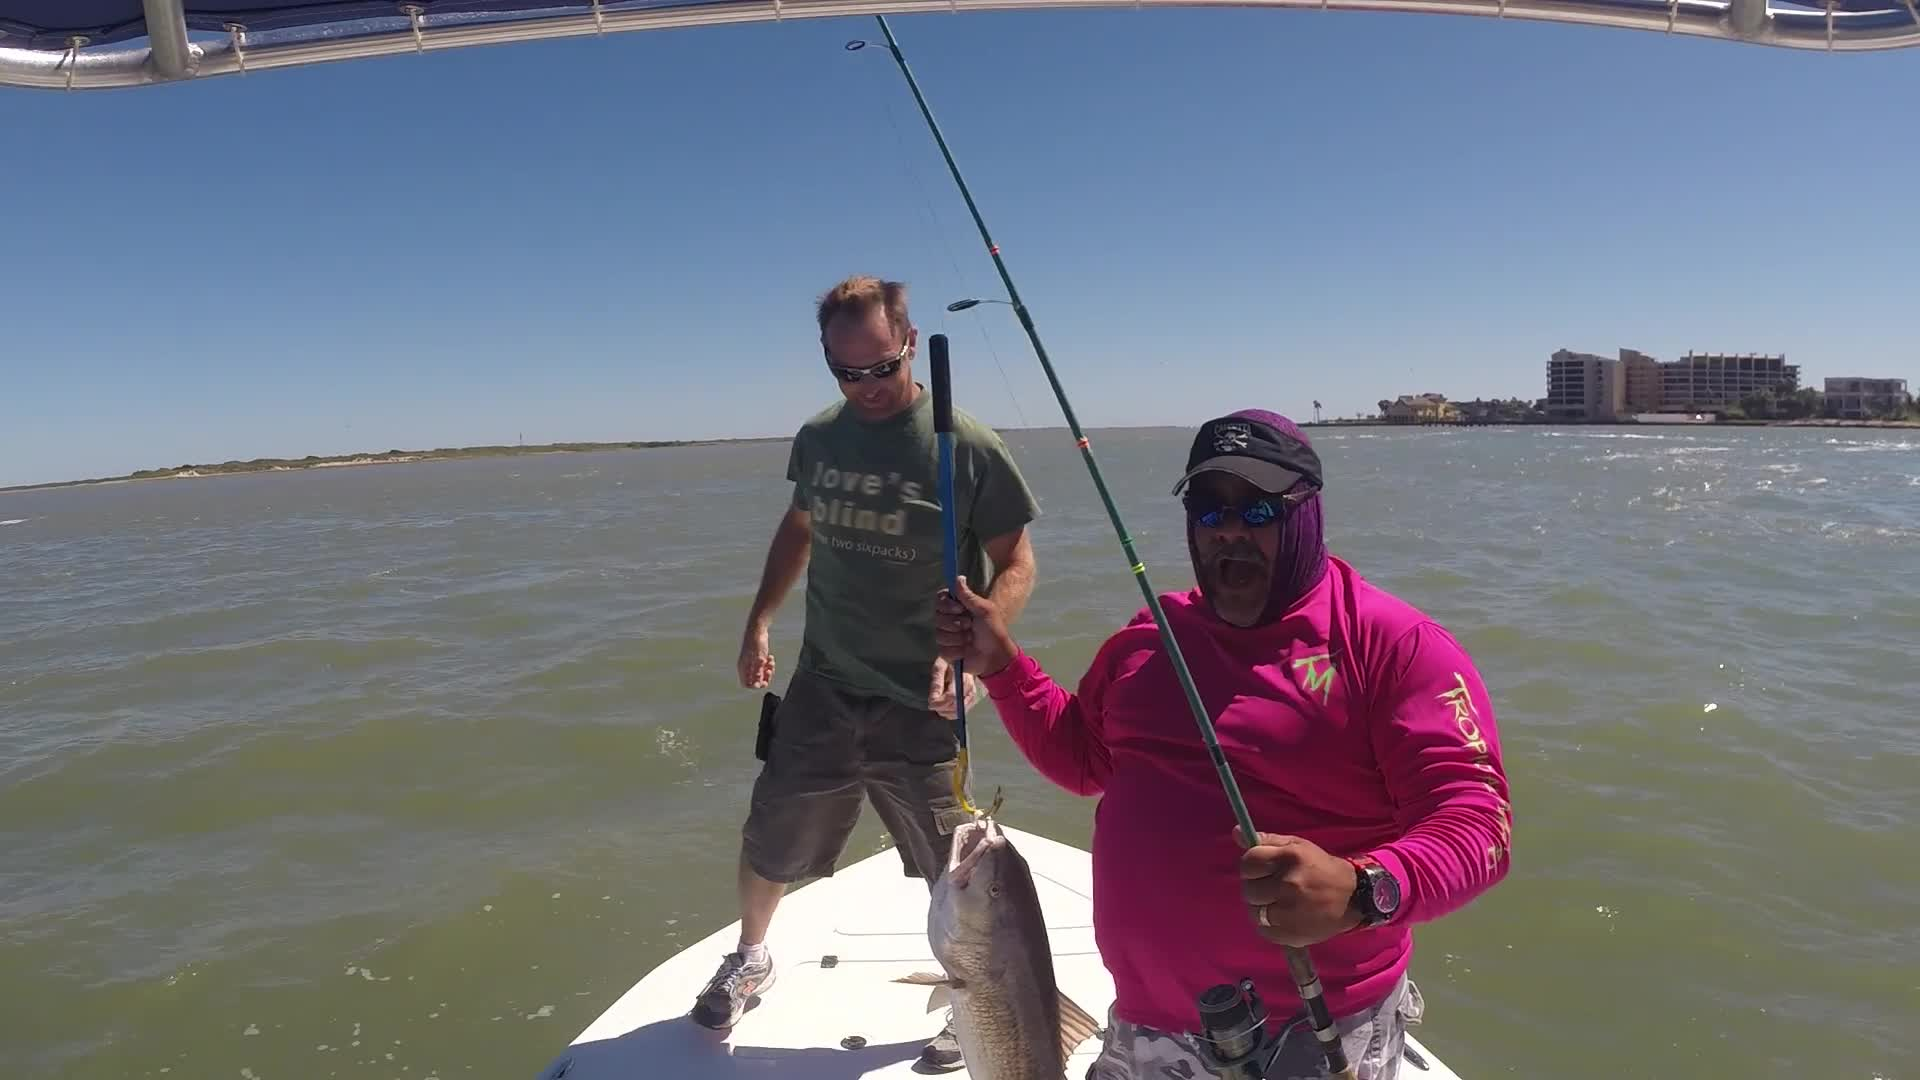 Pebsworth the trip fishing guide rockport tx fishingbooker for Fishing guides rockport tx